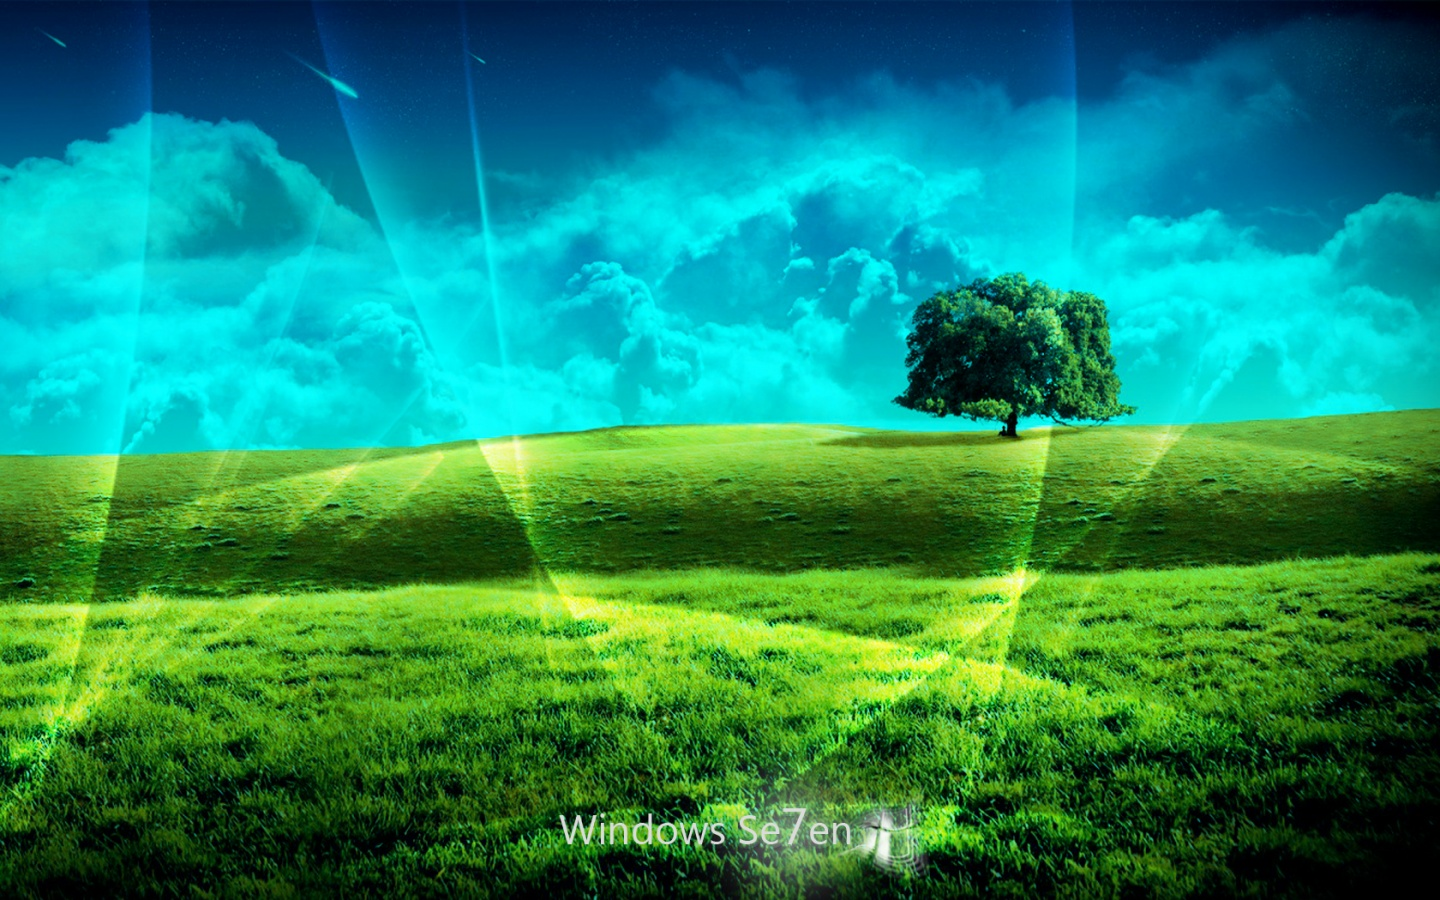 windows 7 wallpaper 1440x900 - photo #20